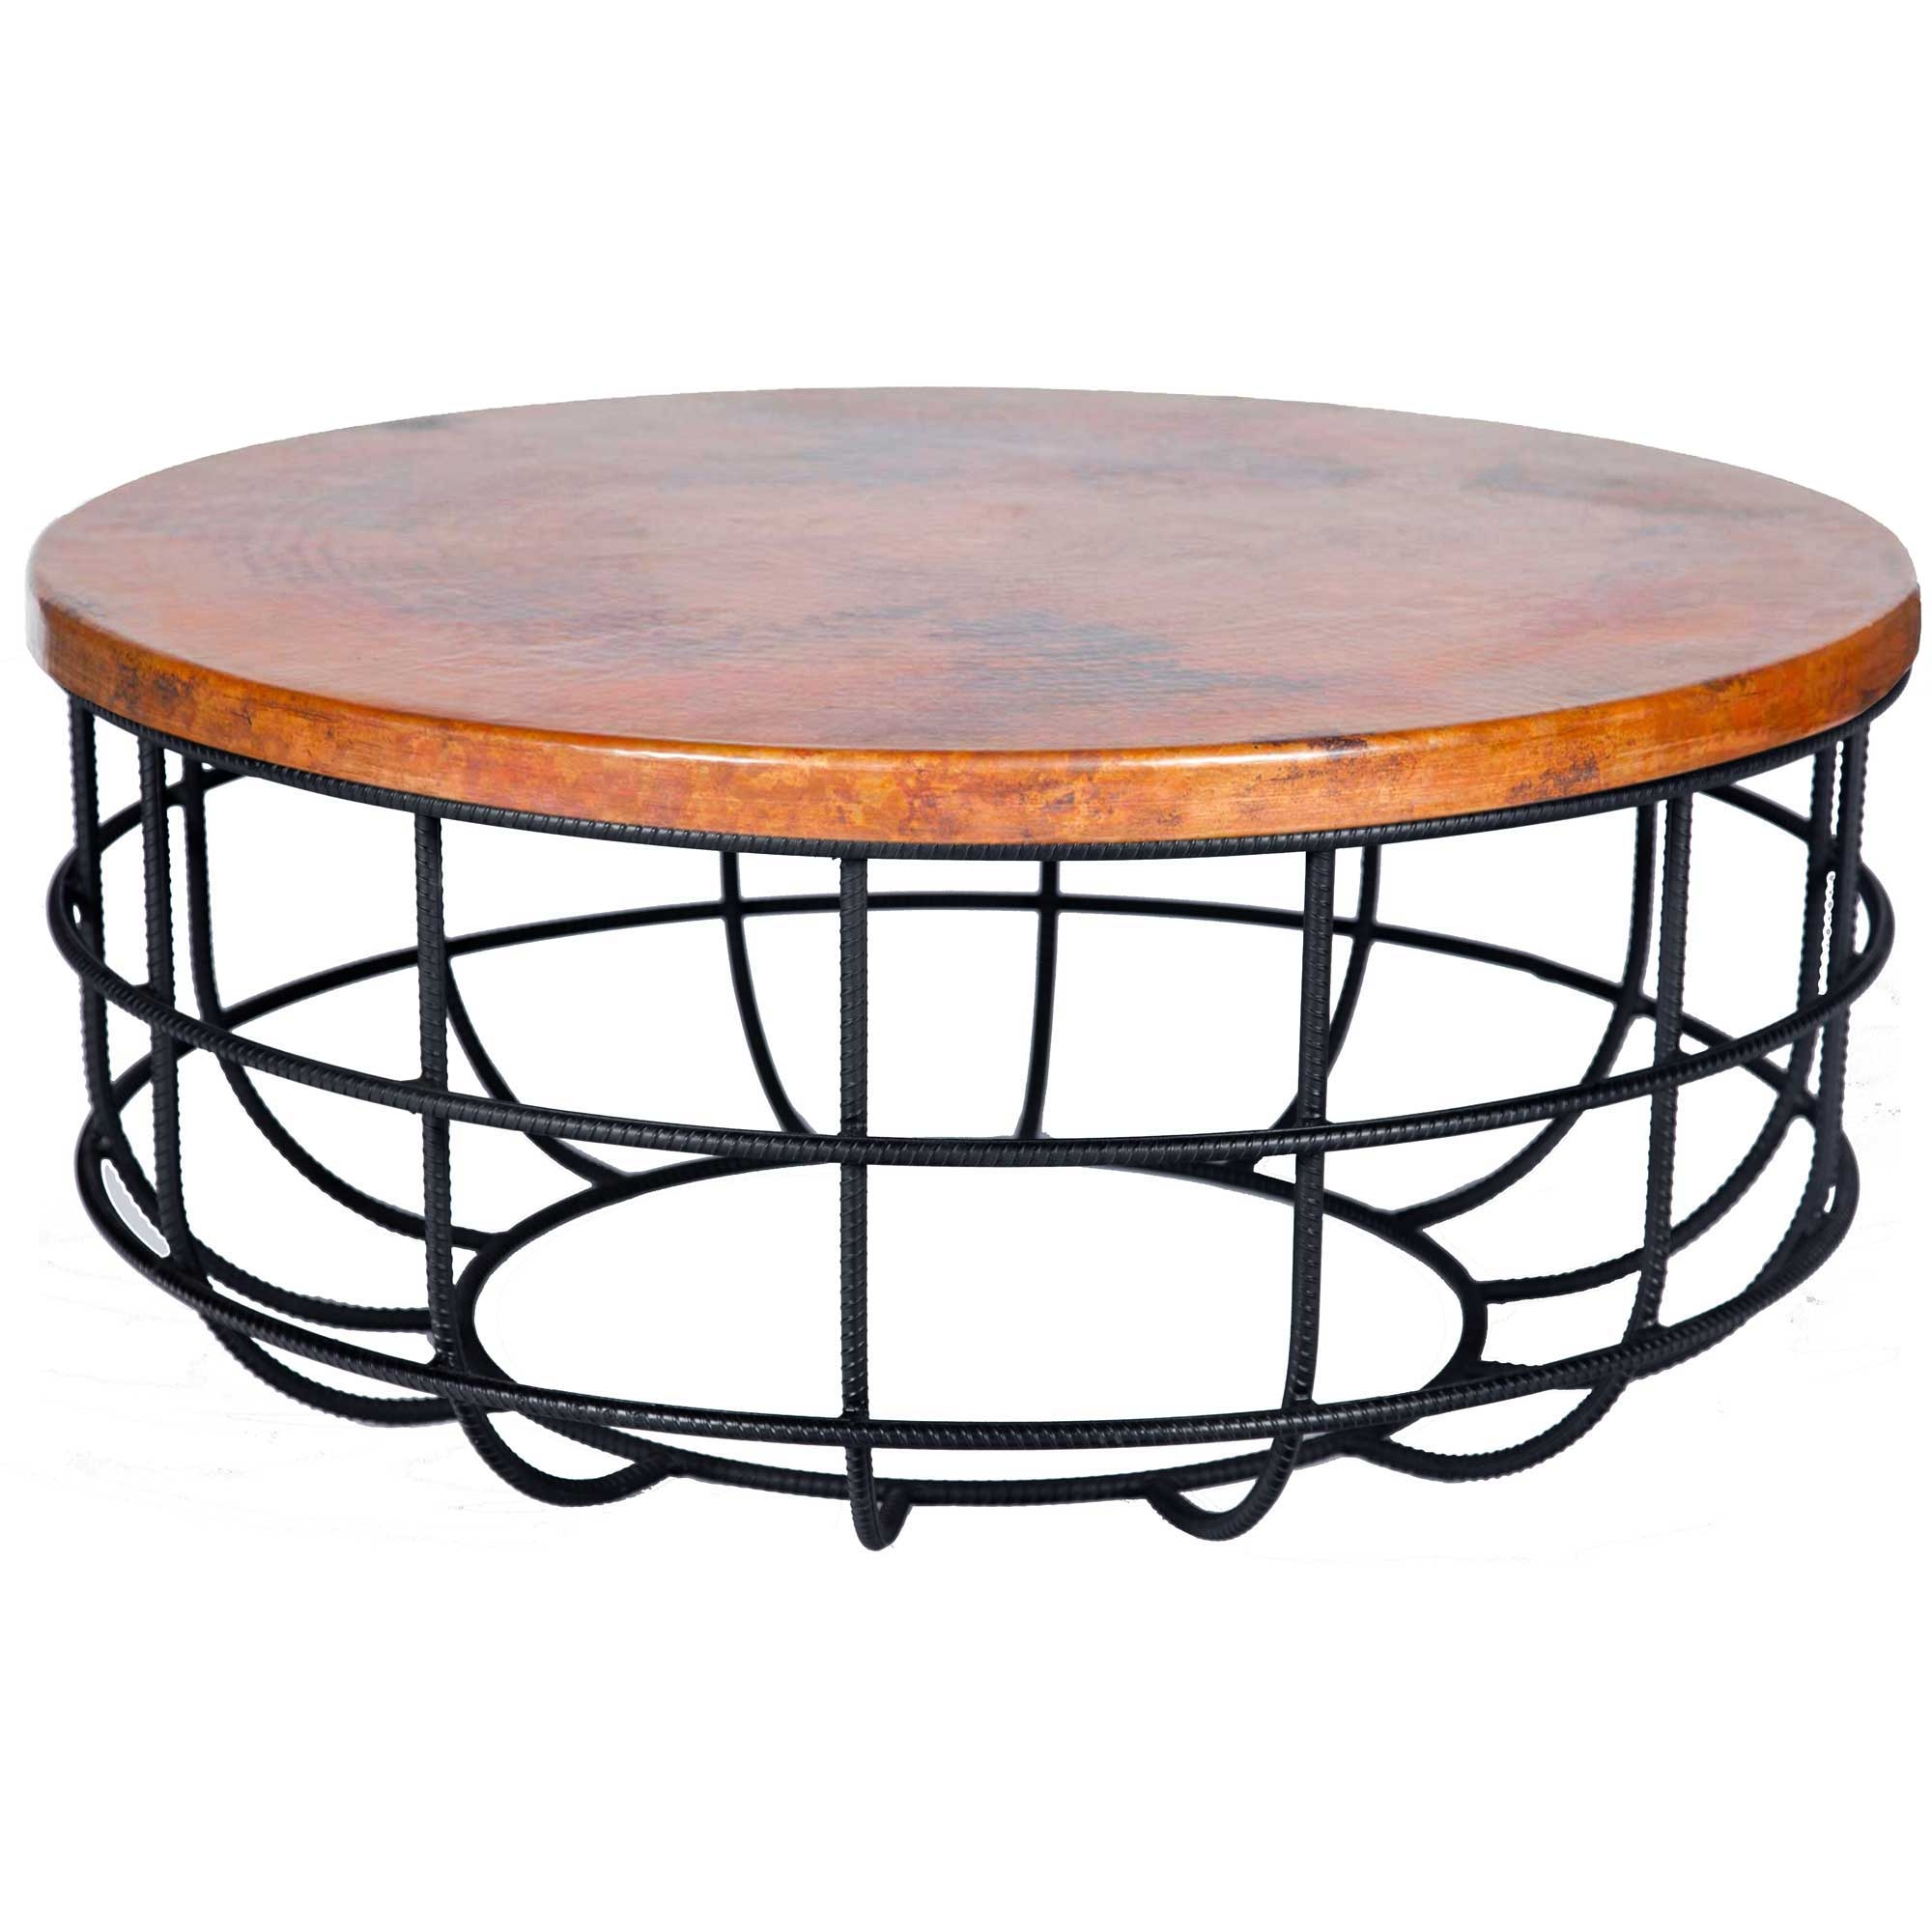 Pictured Here Is The Axel Coffee Table With Wrought Iron Base And Round Hammered Copper Table Top